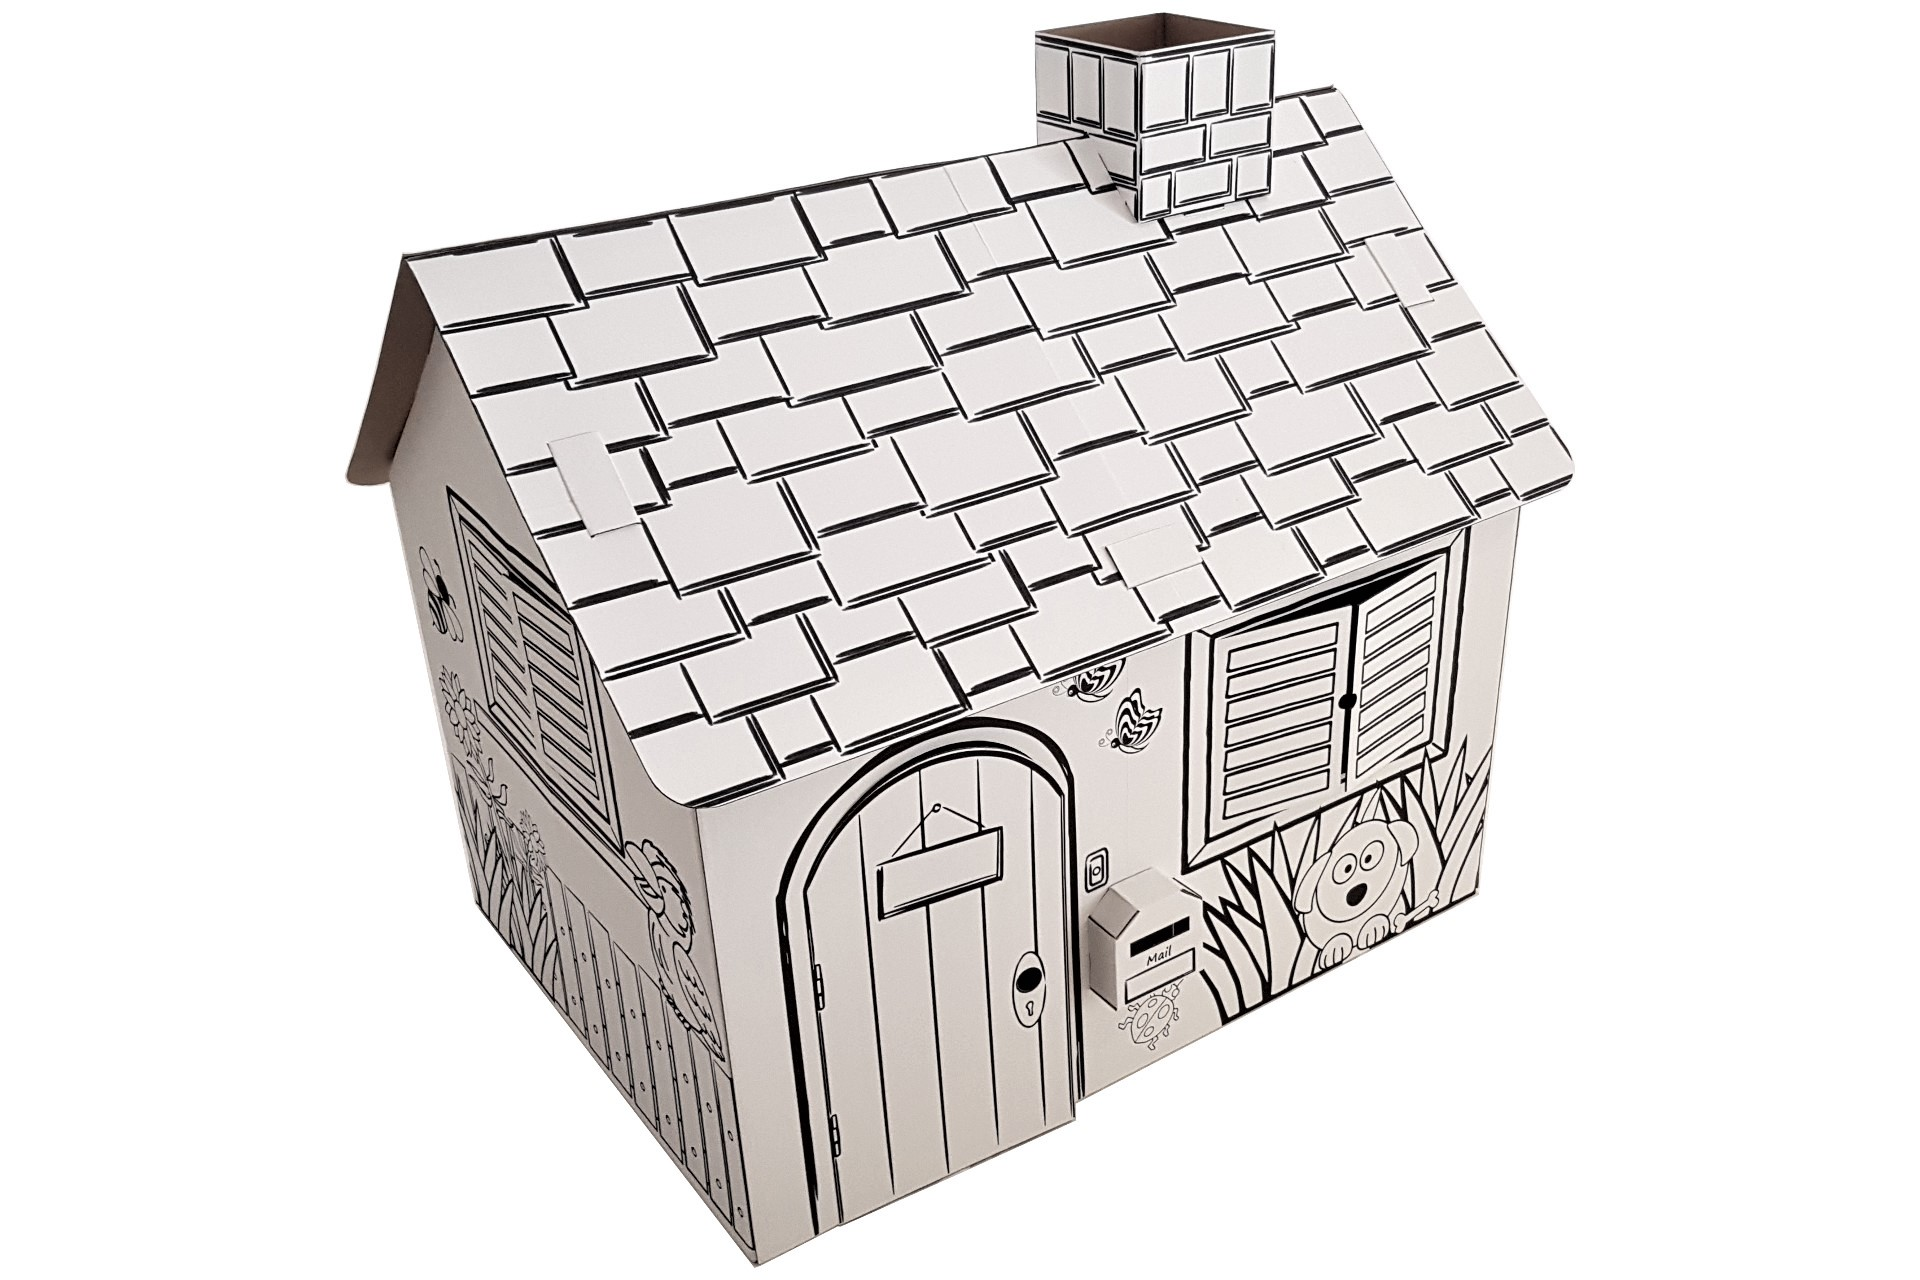 Bodey Cardboard Cubby House - Close-Up